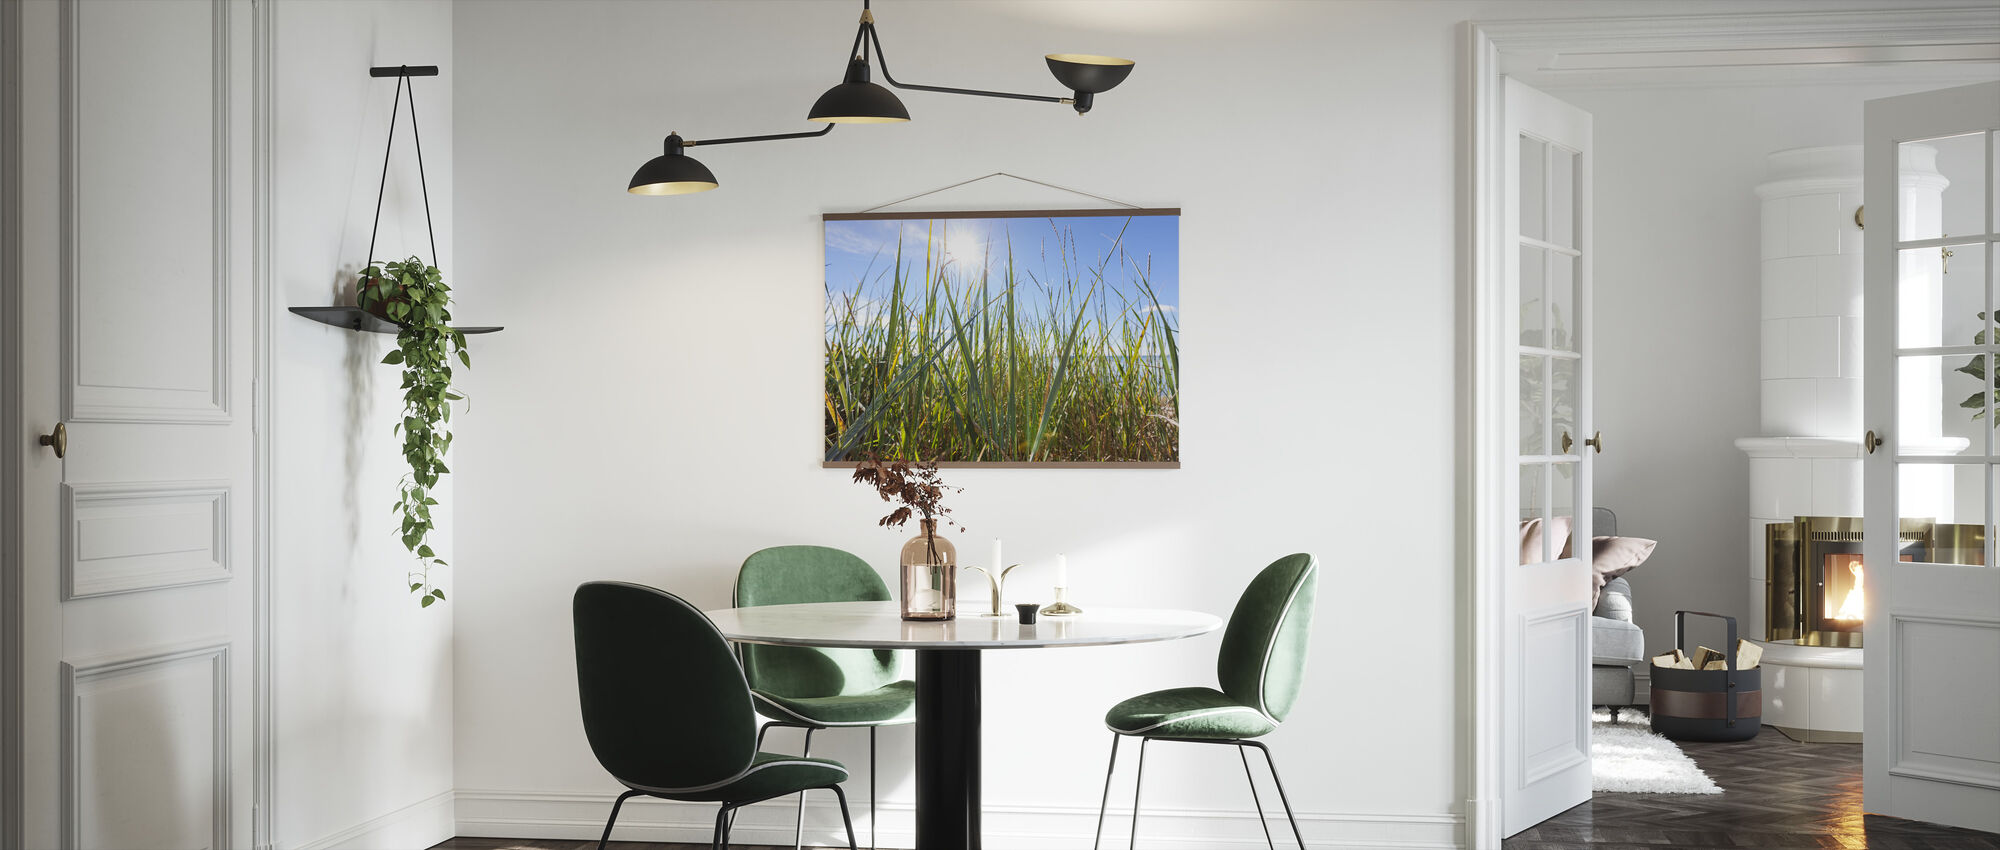 Sunshine and Grass - Poster - Kitchen